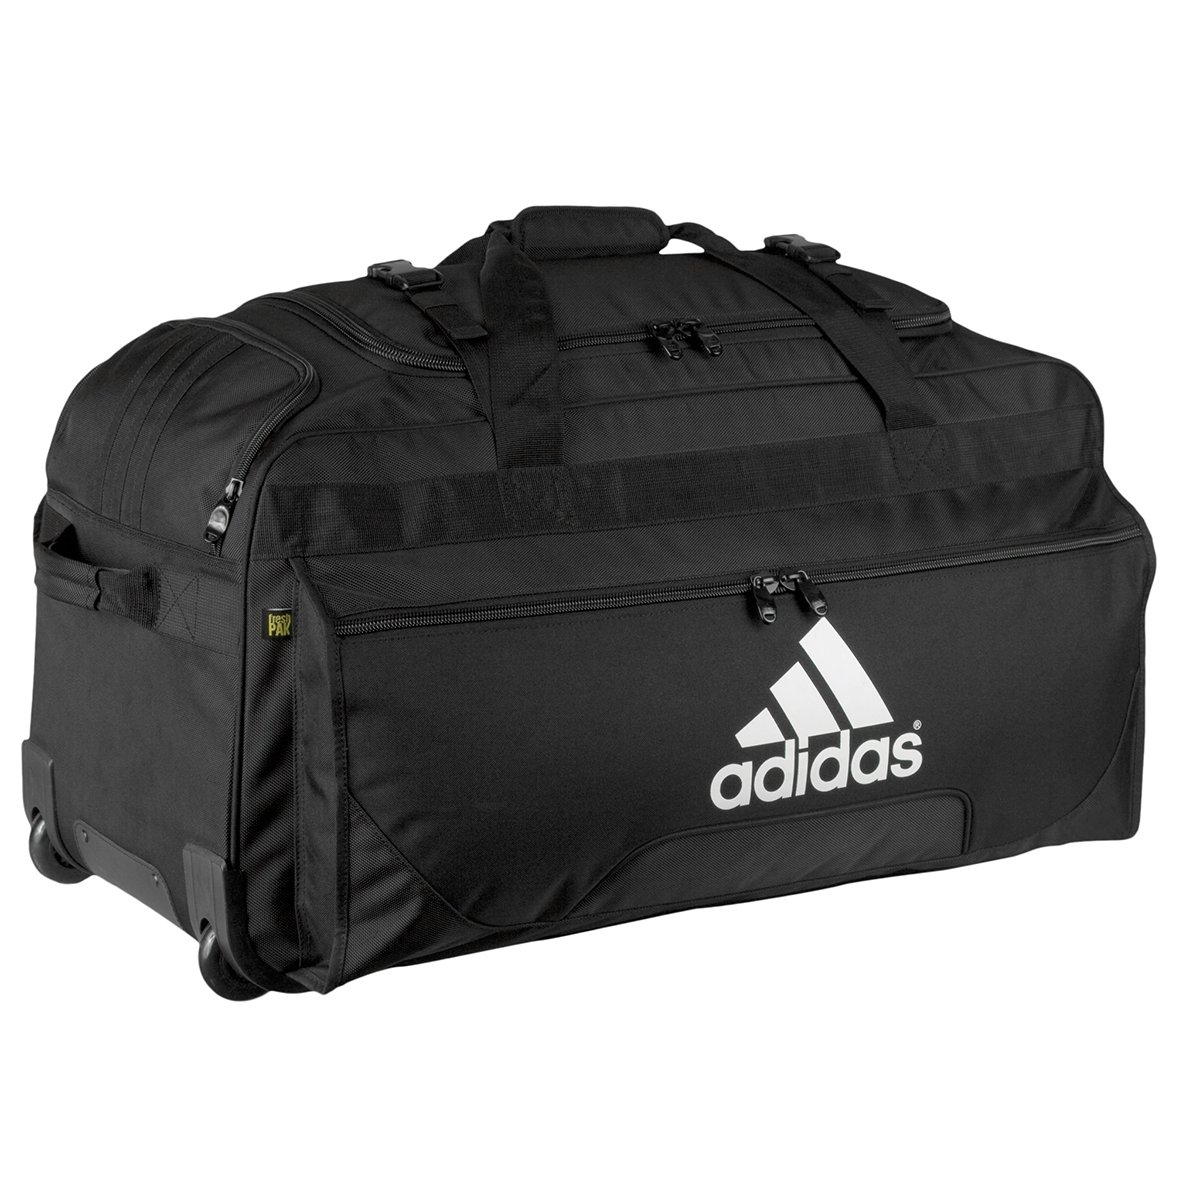 a7edc17e65 Amazon.com  adidas Team Wheel Bag